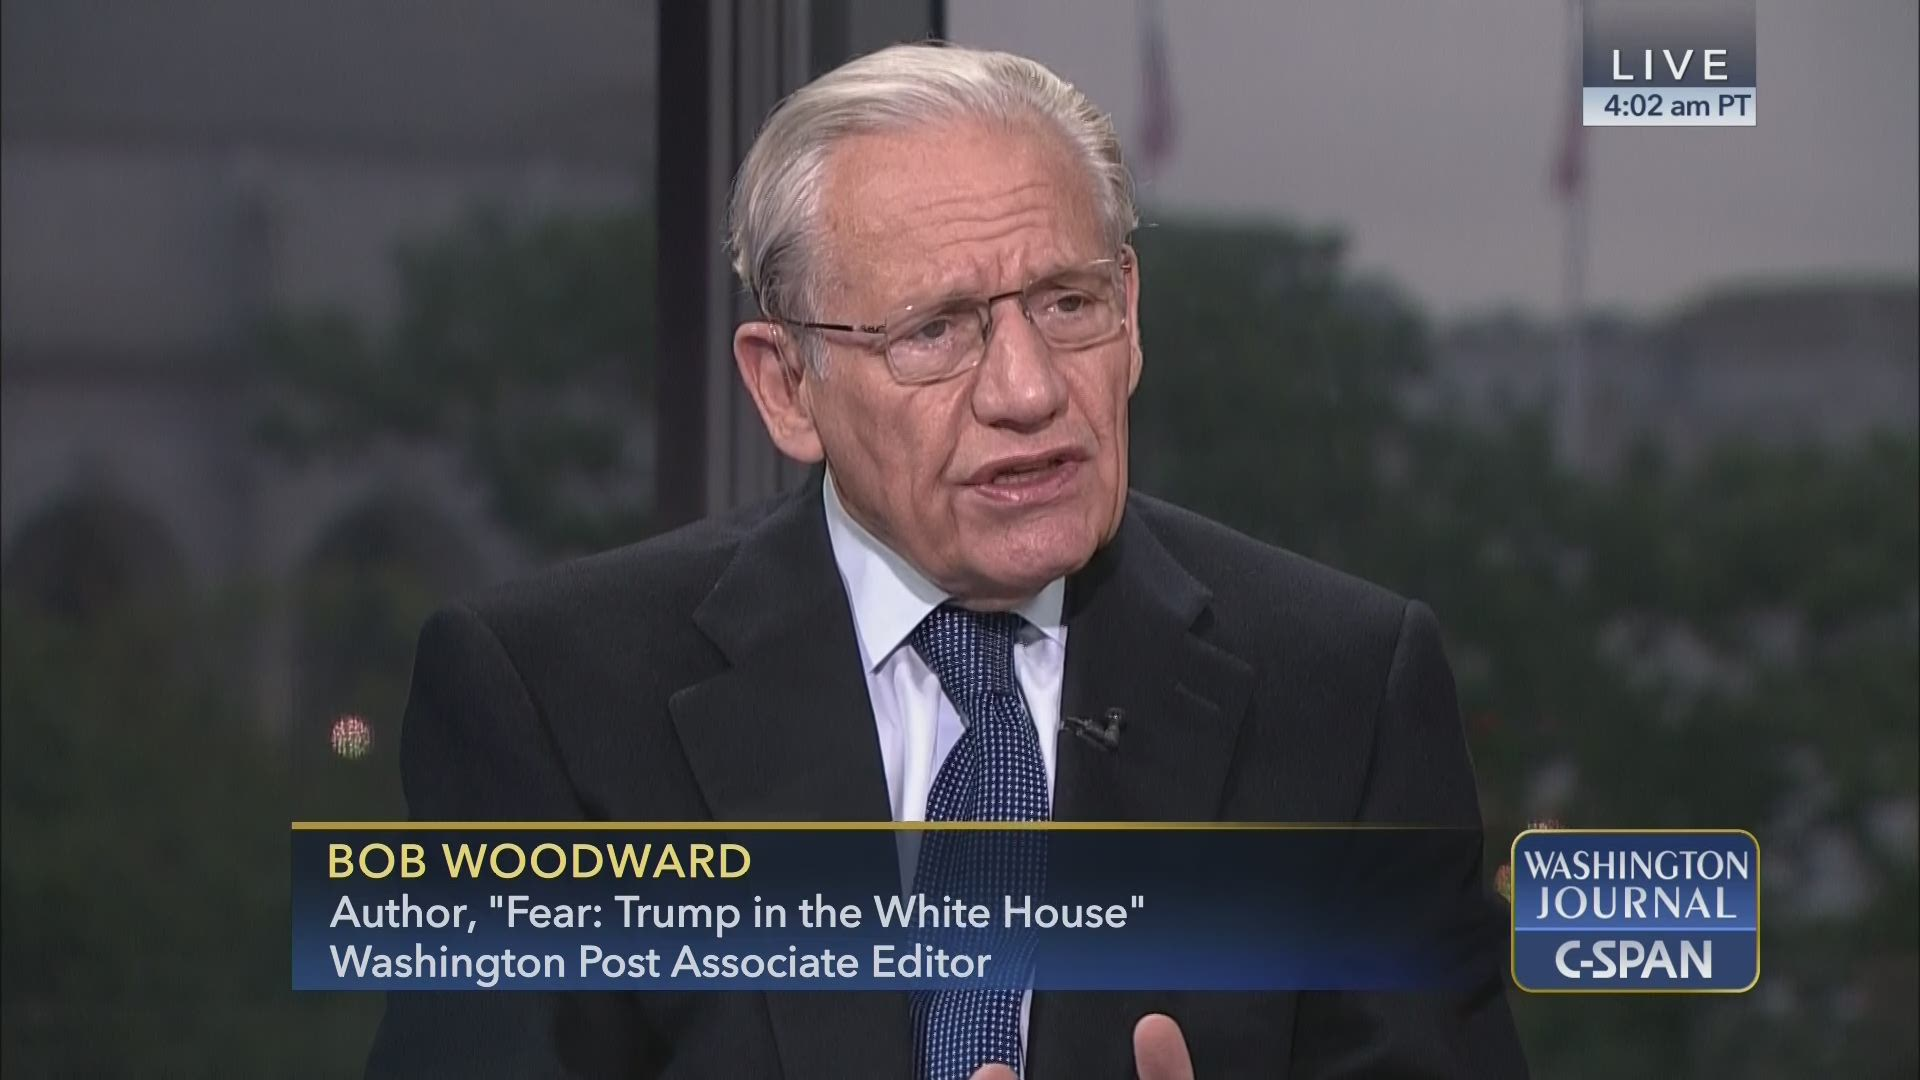 Bob Woodward on Fear: Trump in the White House